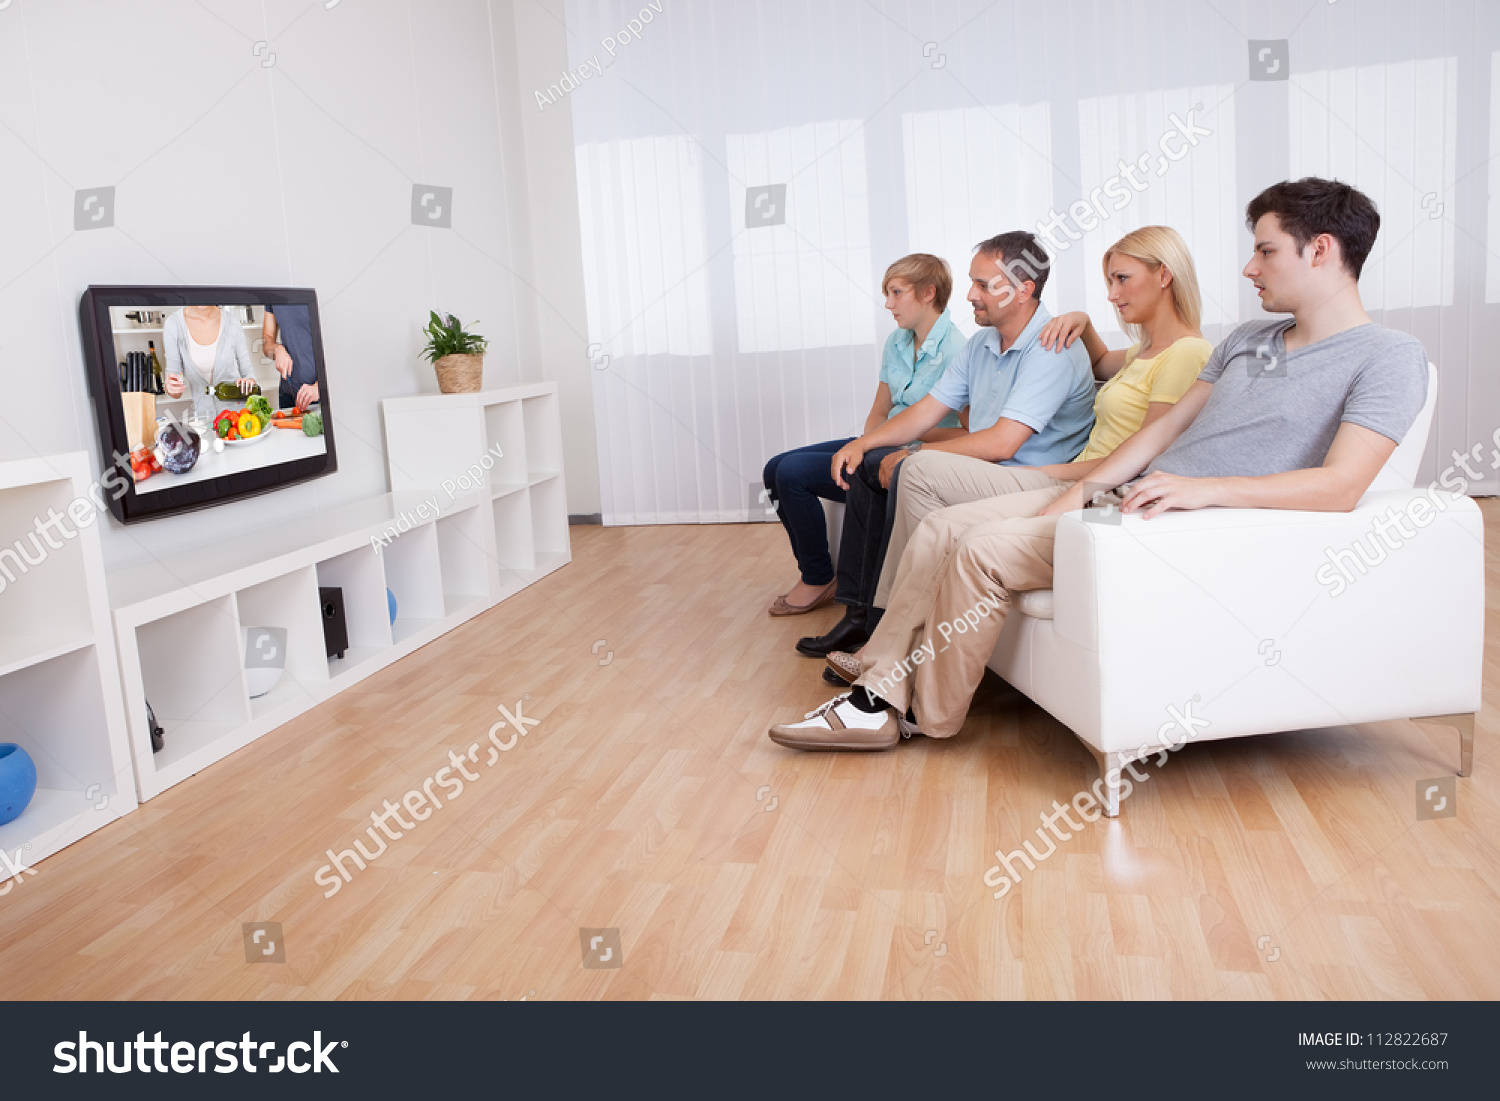 Teenage Living Room Family Teenage Children Sitting Together On Stock Photo 112822687